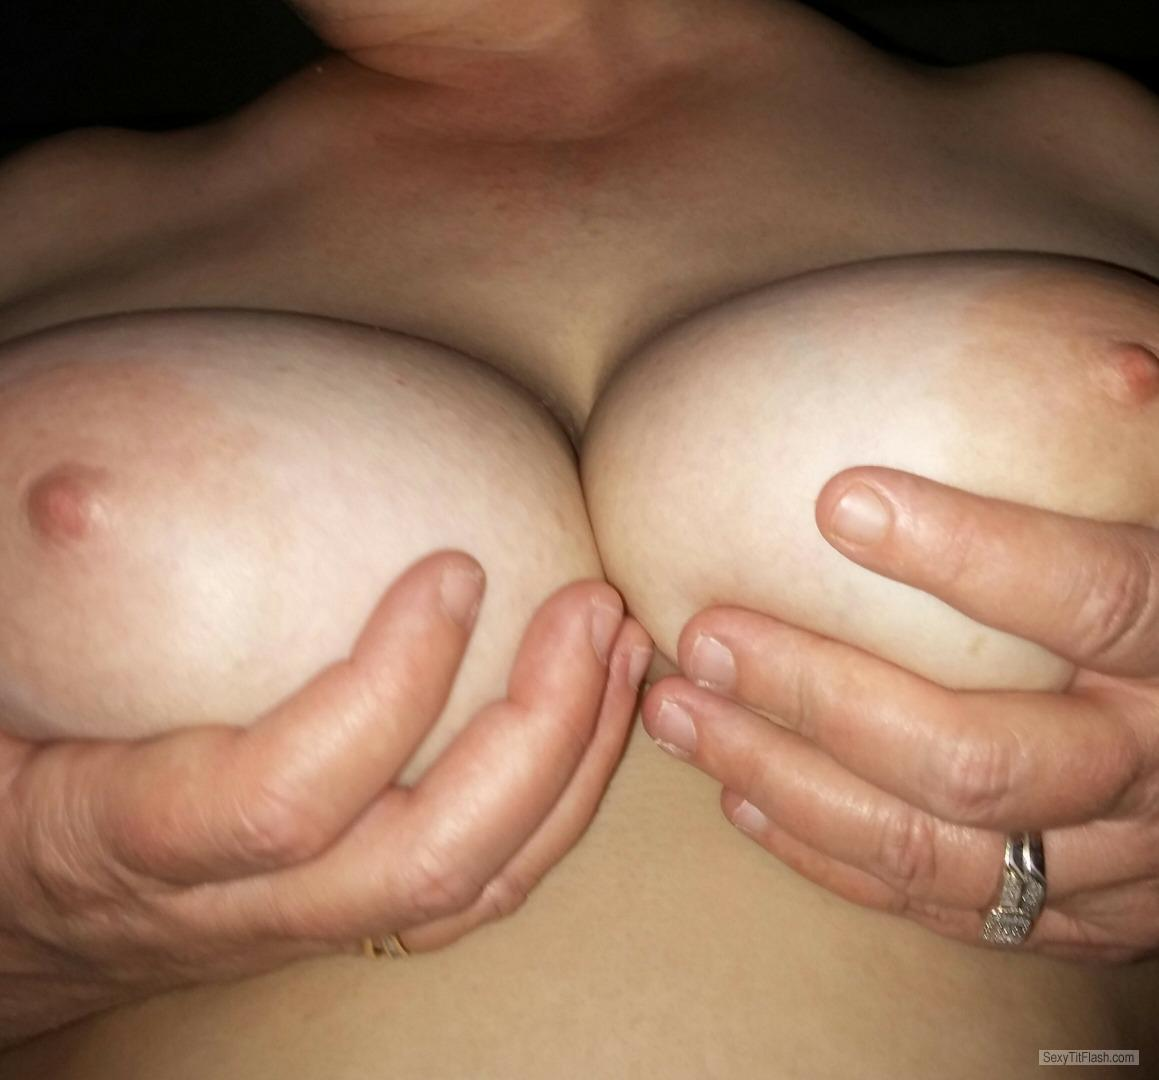 Tit Flash: Wife's Medium Tits - Sweet from United States